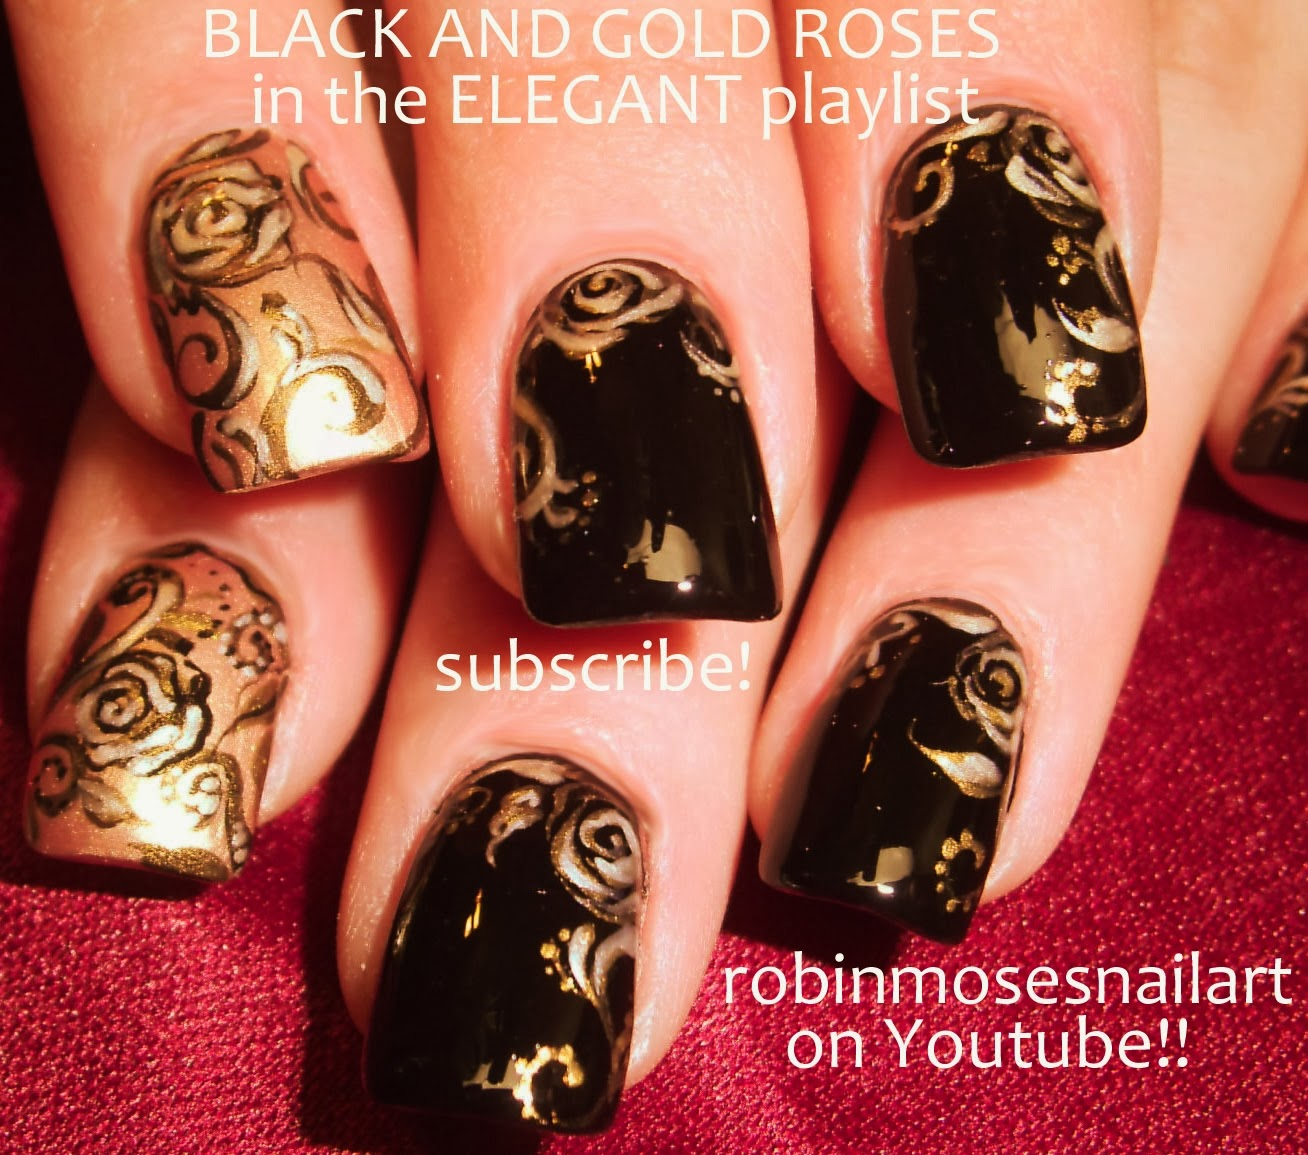 Robin moses nail art rose nail art nail art nails red other rose nail art can be found in the playlist flowers here rose nail art search robin moses roses or roses in the flowers playlist and find tons prinsesfo Choice Image